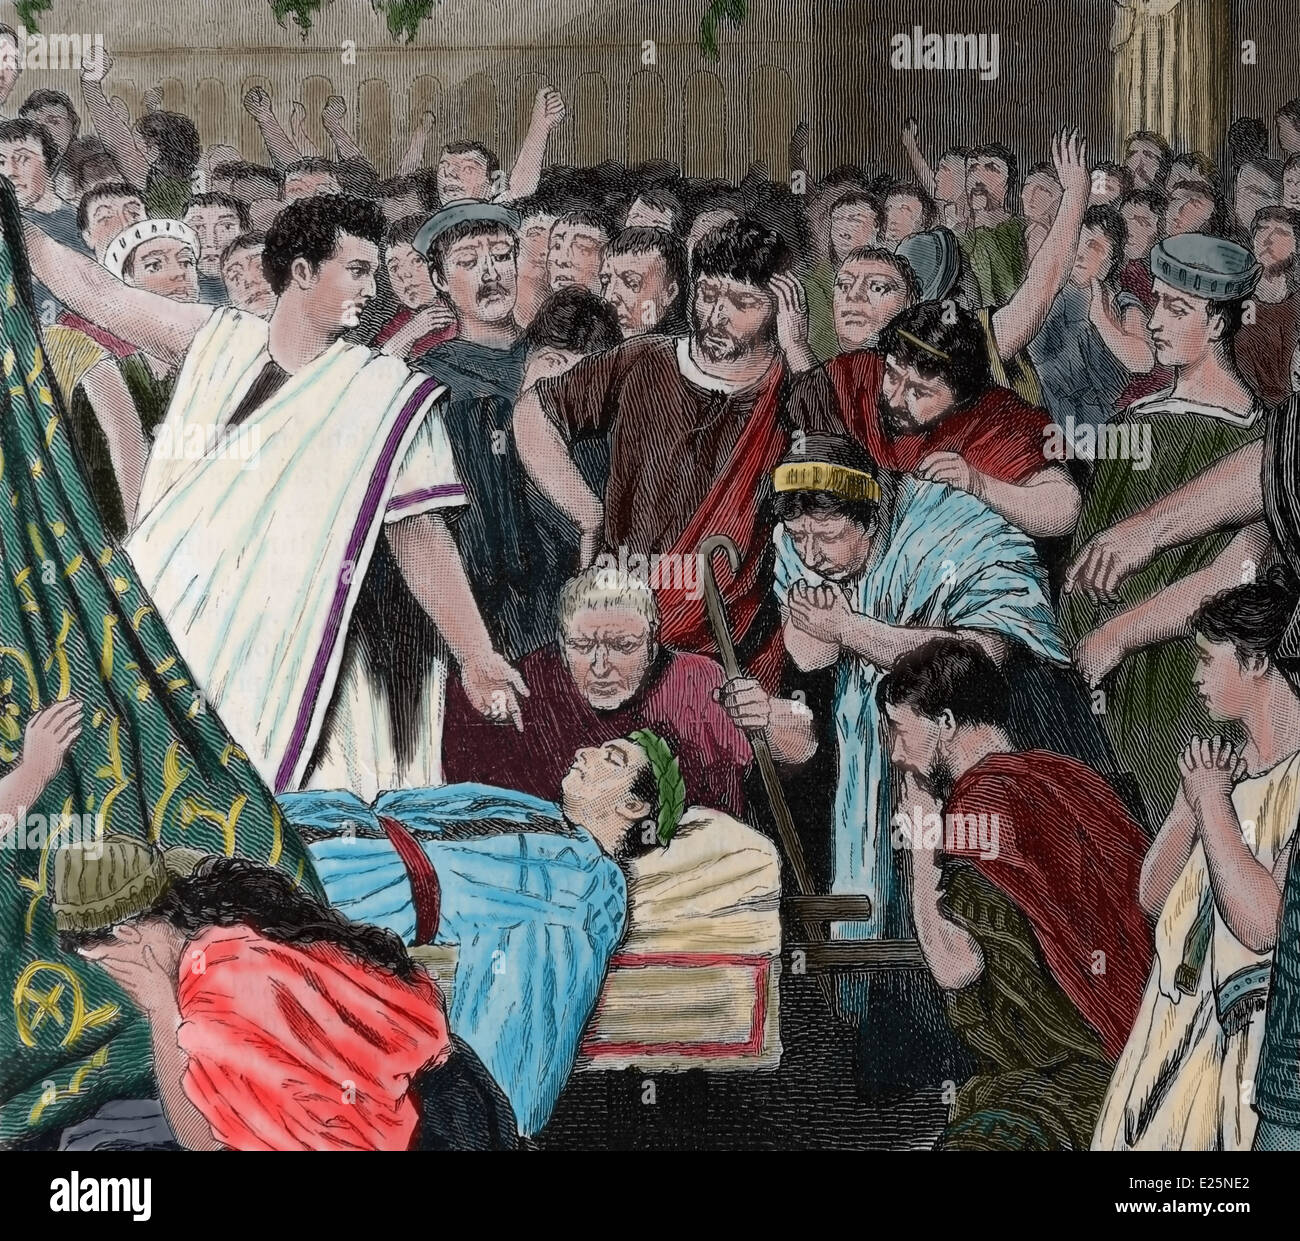 a report on the assassination of julius caesar Julius caesar summary provides a quick review of the play's plot including every important action in the play julius caesar summary is divided by the five acts of the play and is an ideal introduction before reading the original text.